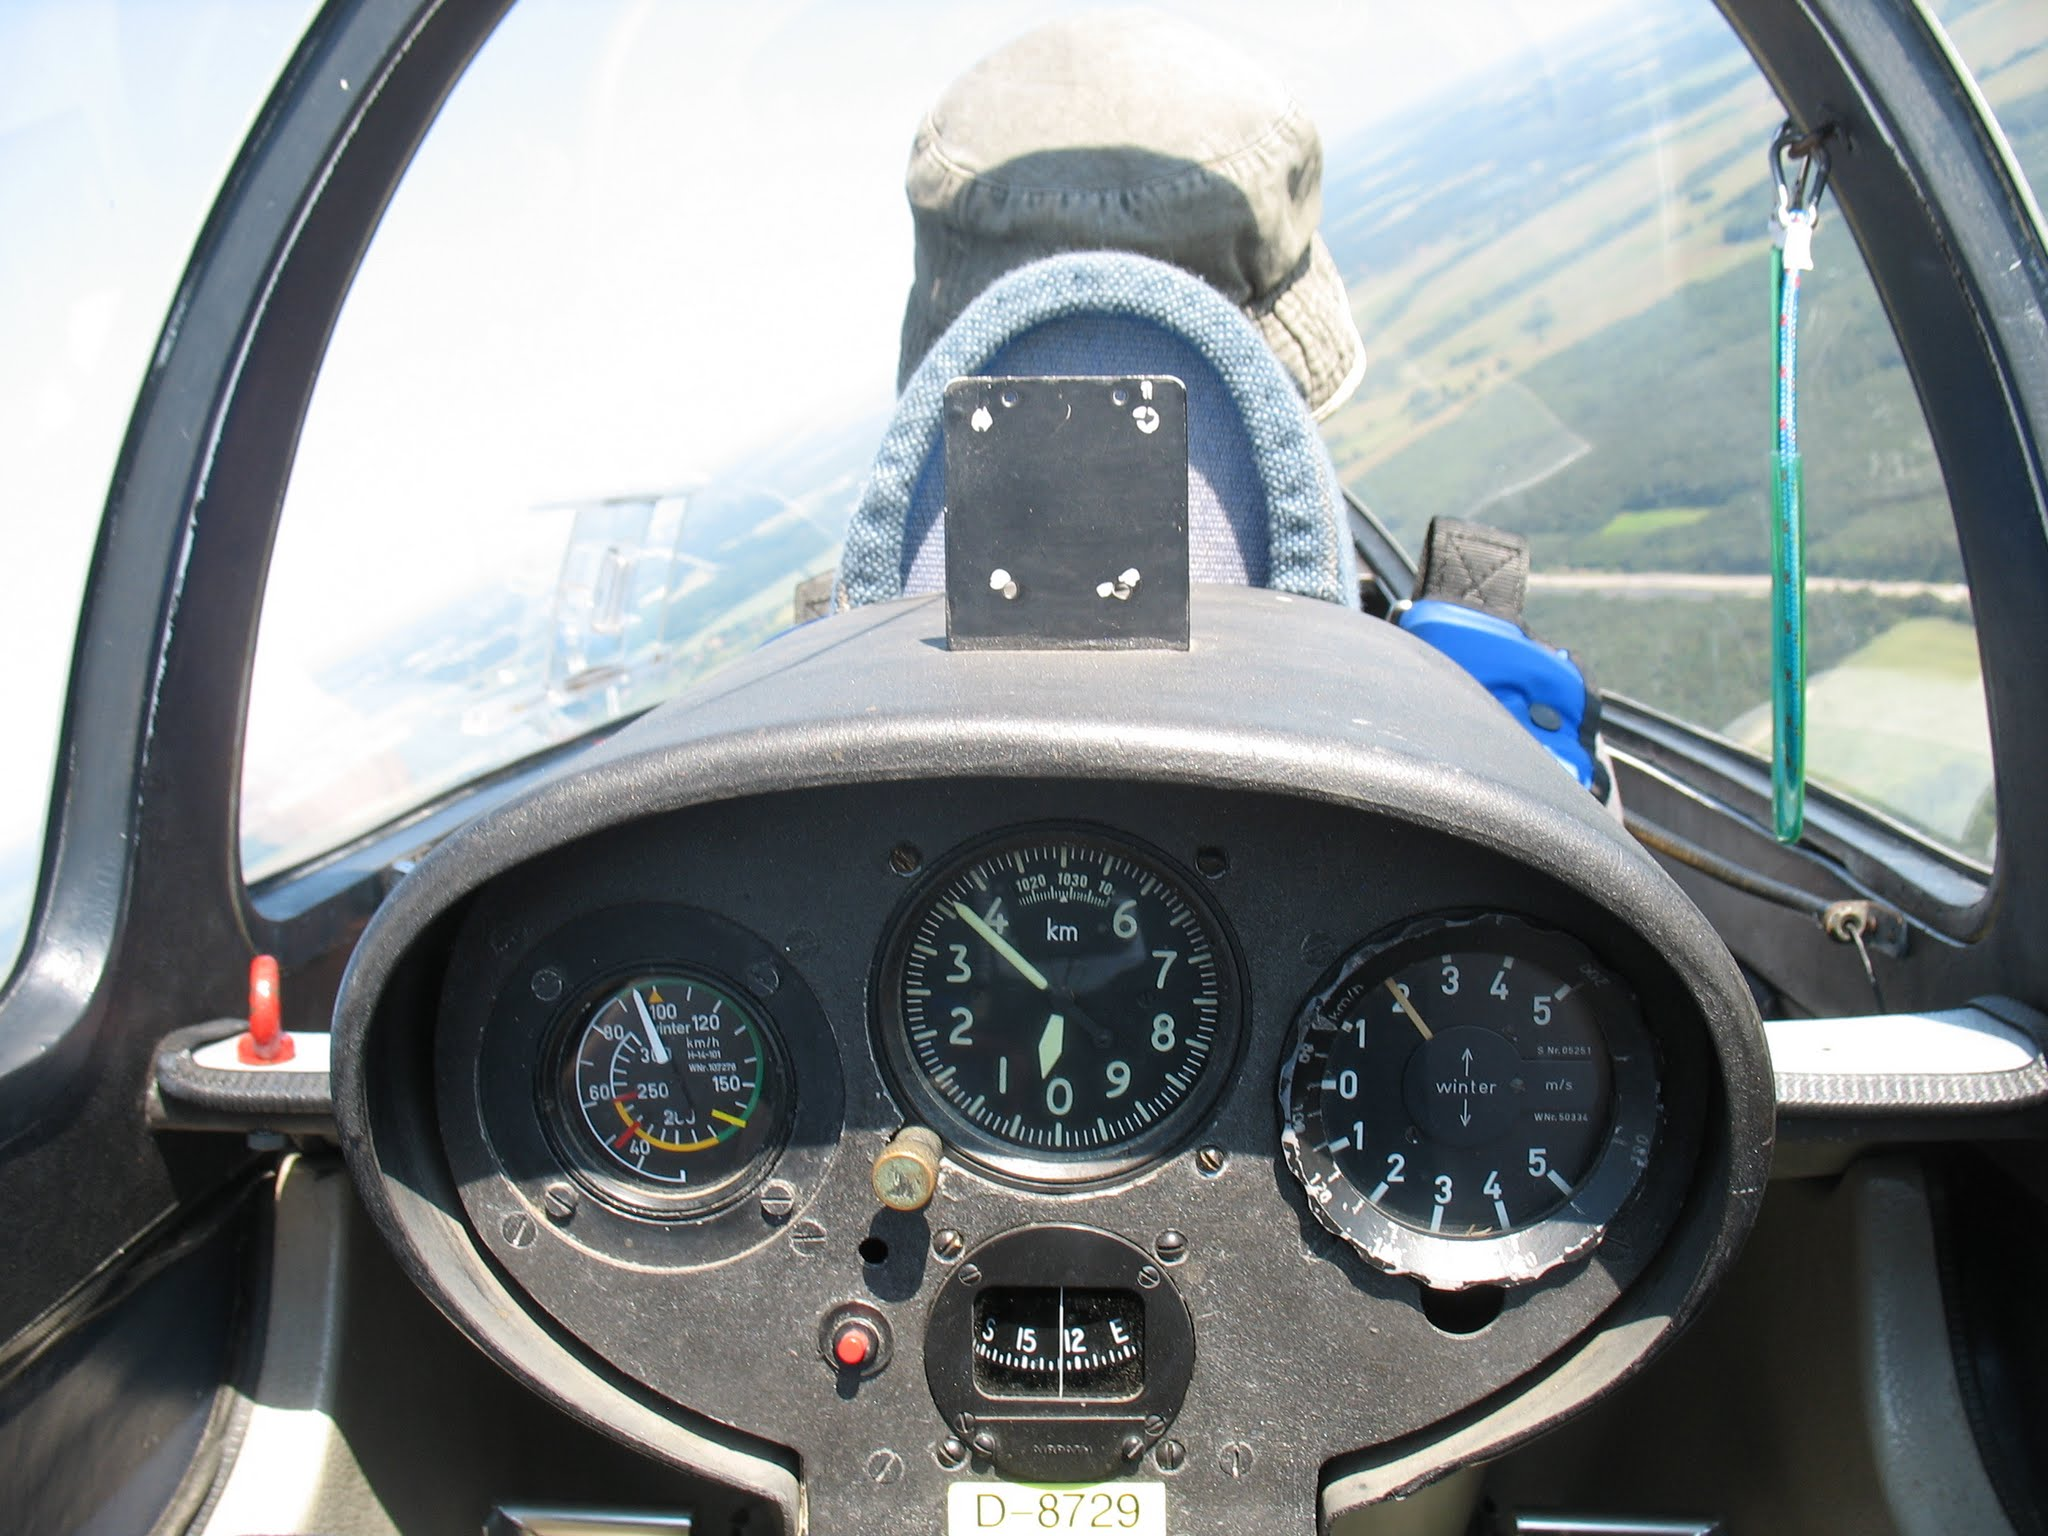 Like pilots, form a team with the stakeholders and fly the project home.